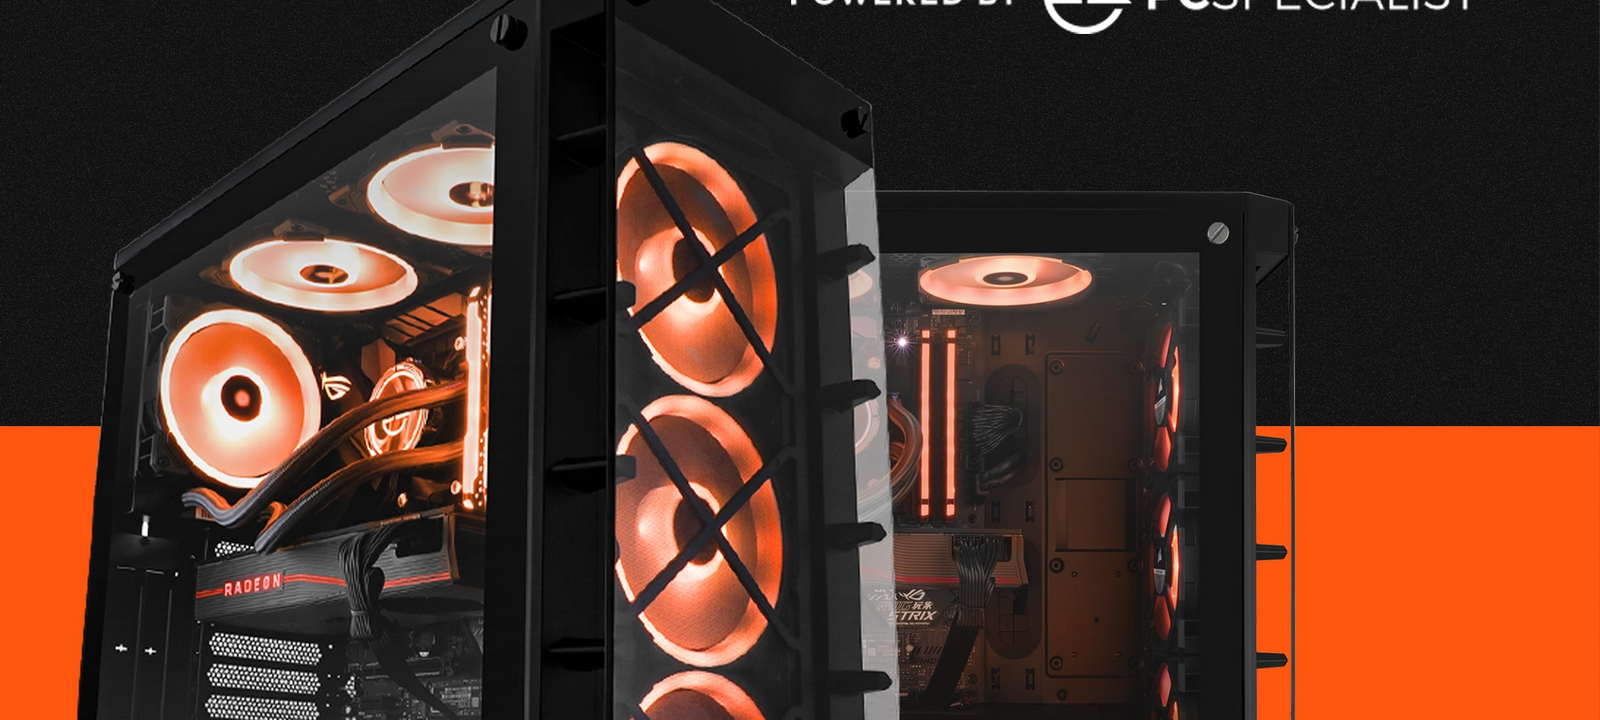 PCSpecialist teams up with Esports Giant Fnatic as exclusive Gaming PC partner